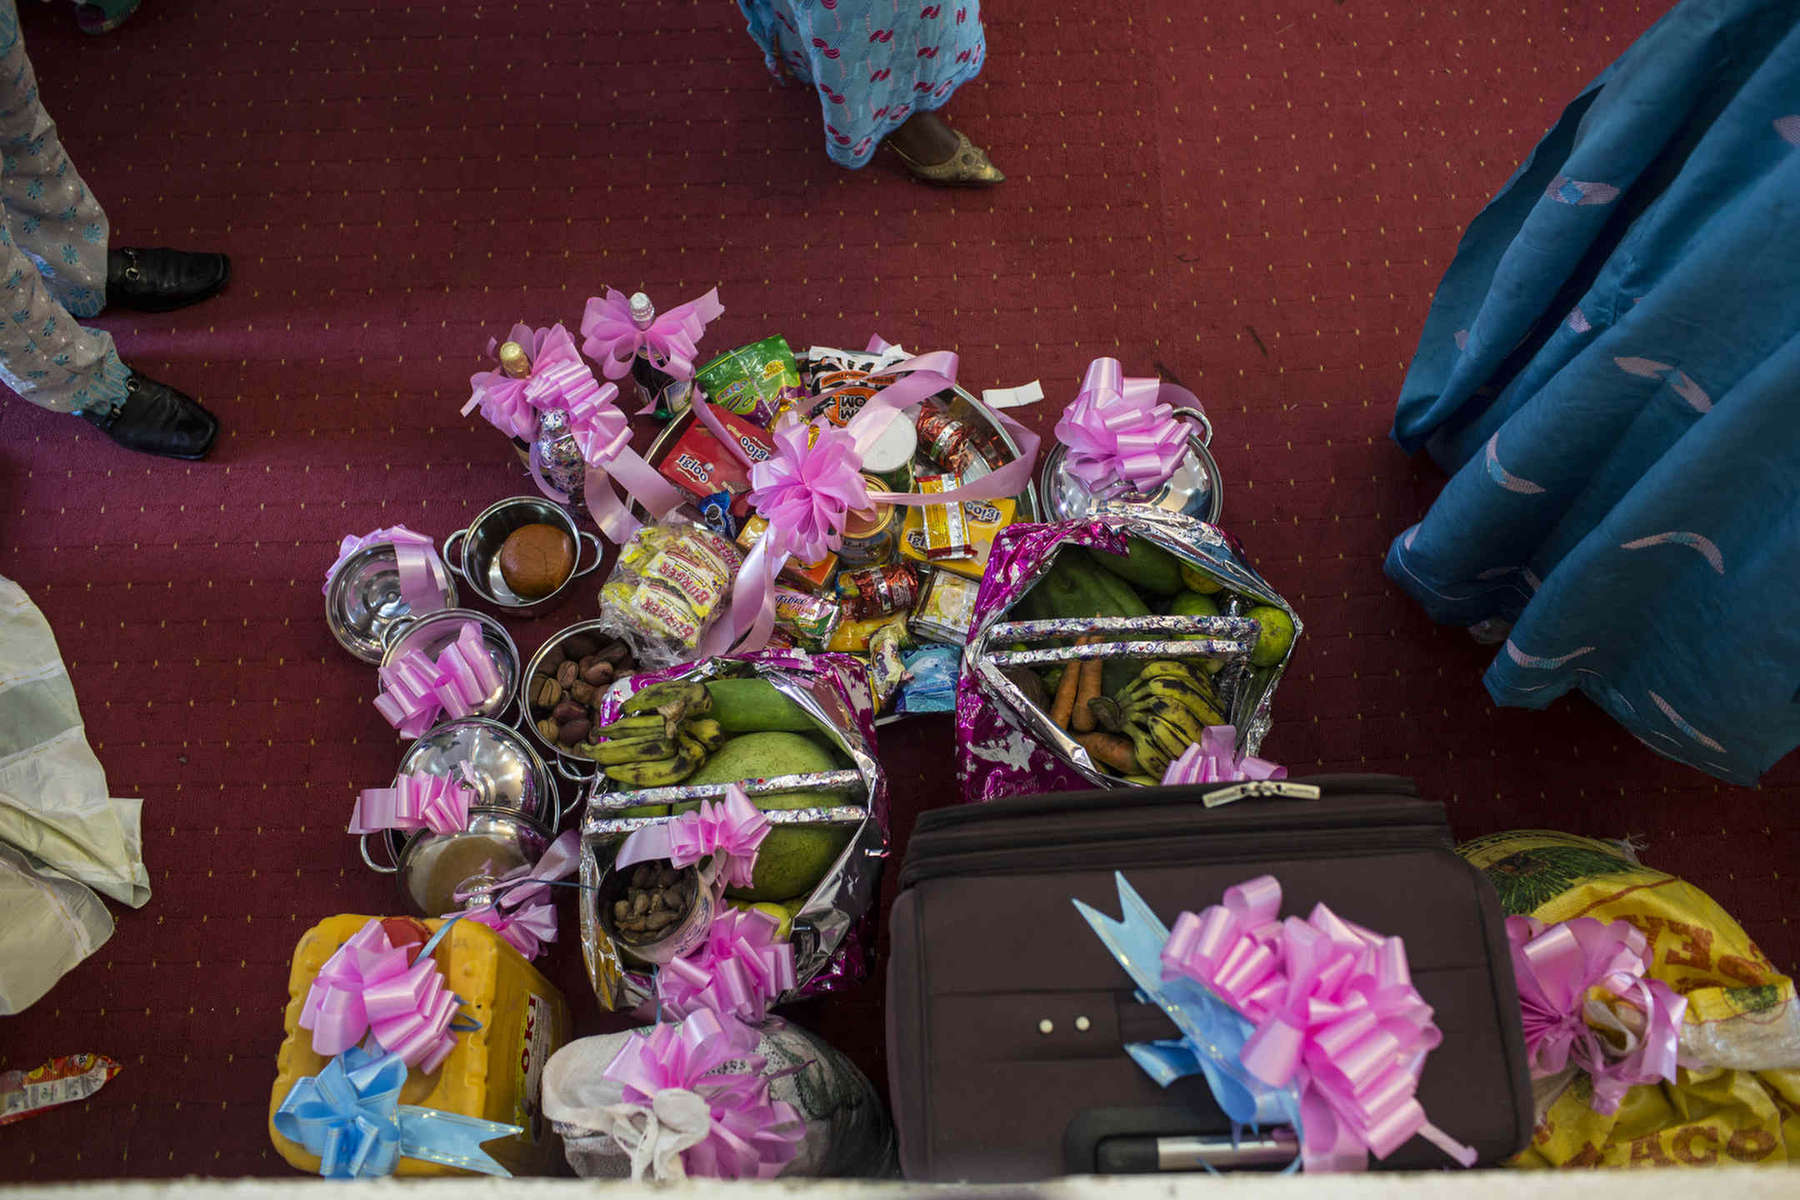 Gifts for a couple pile up. Common wedding gifts for middle and lower class Nigerians include suitcases, jerry cans, fruits and vegetables, and more.